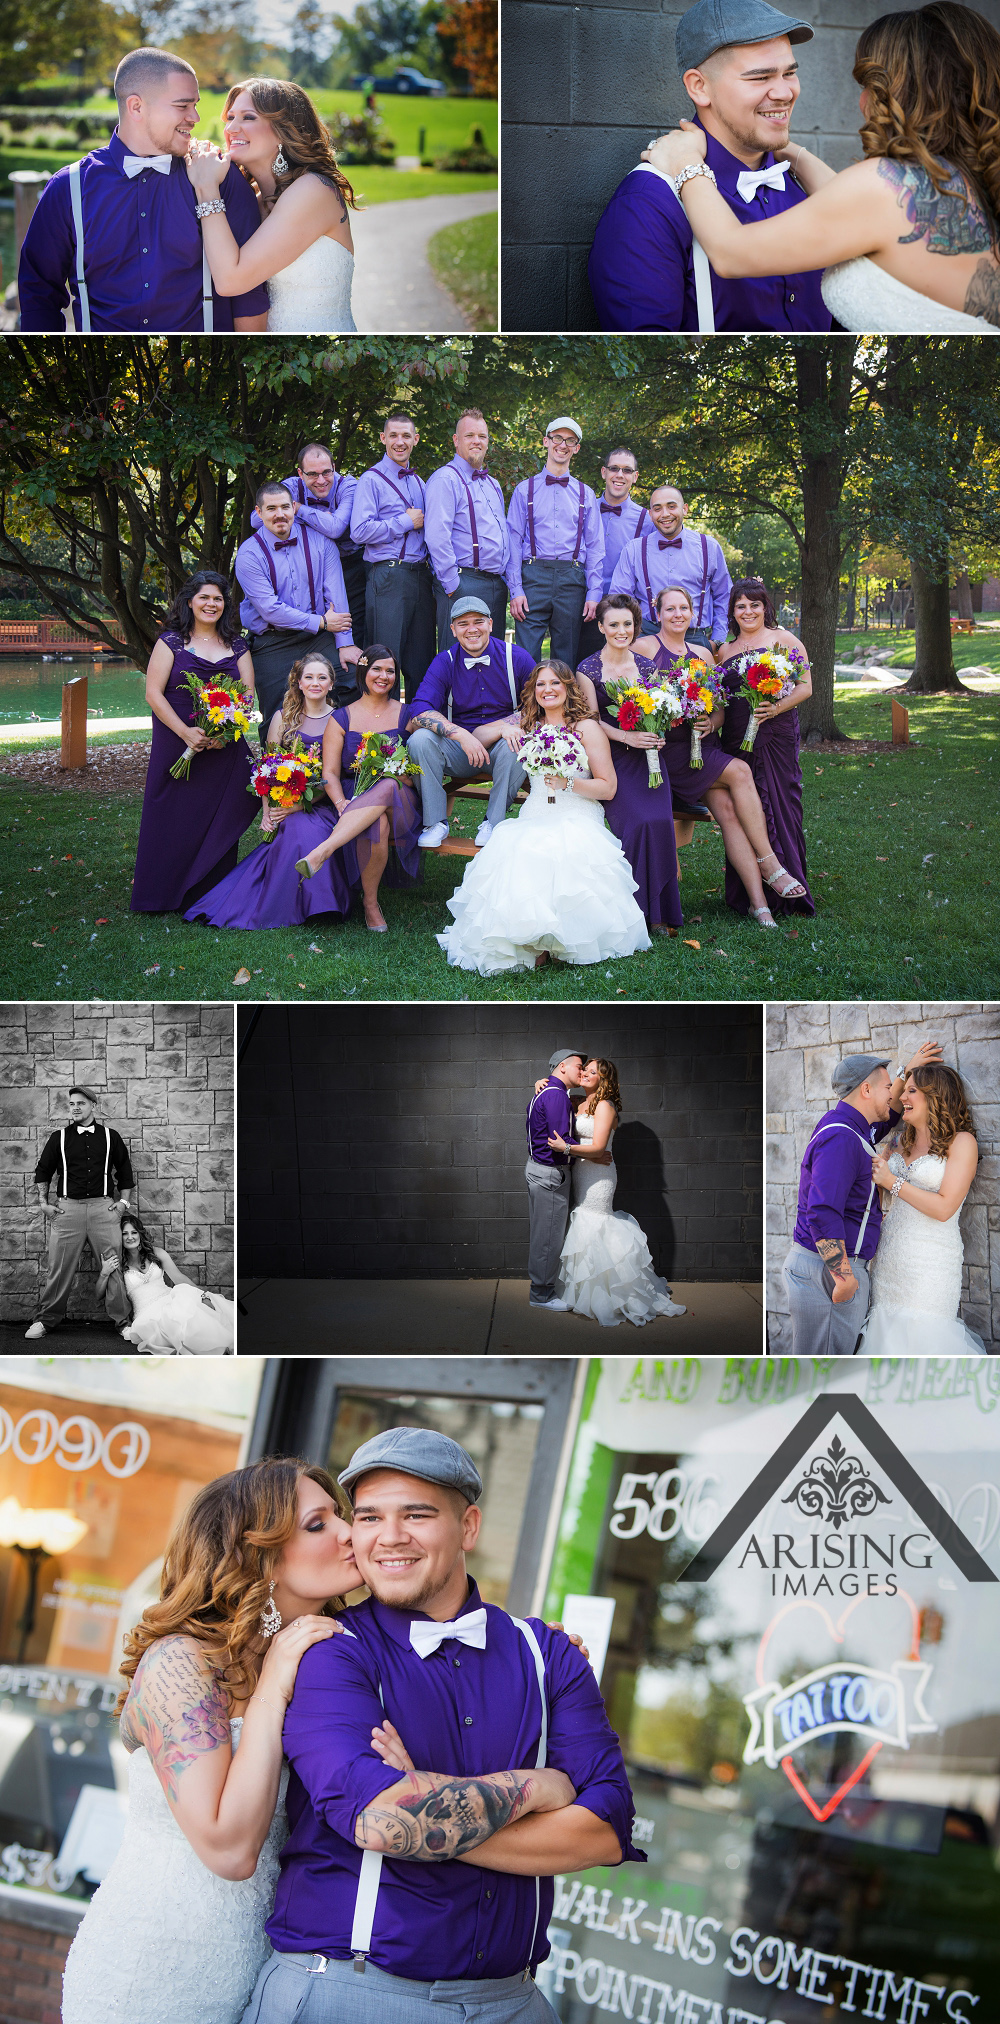 Edgy Detroit Wedding Photography